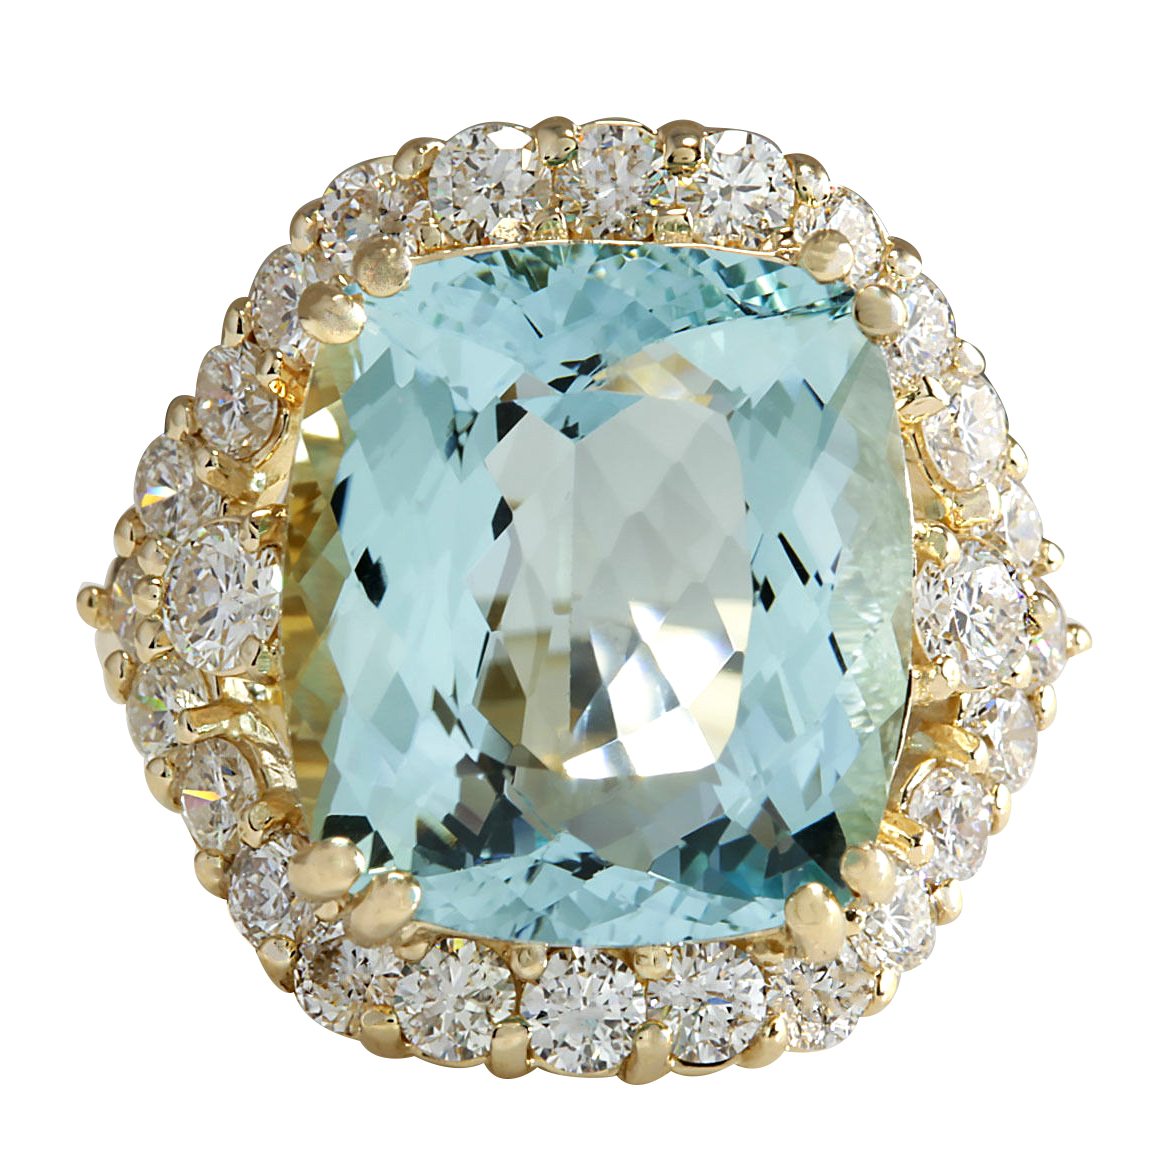 13.13Ct Natural Aquamarine And Diamond Ring In14K Solid Yello Gold by